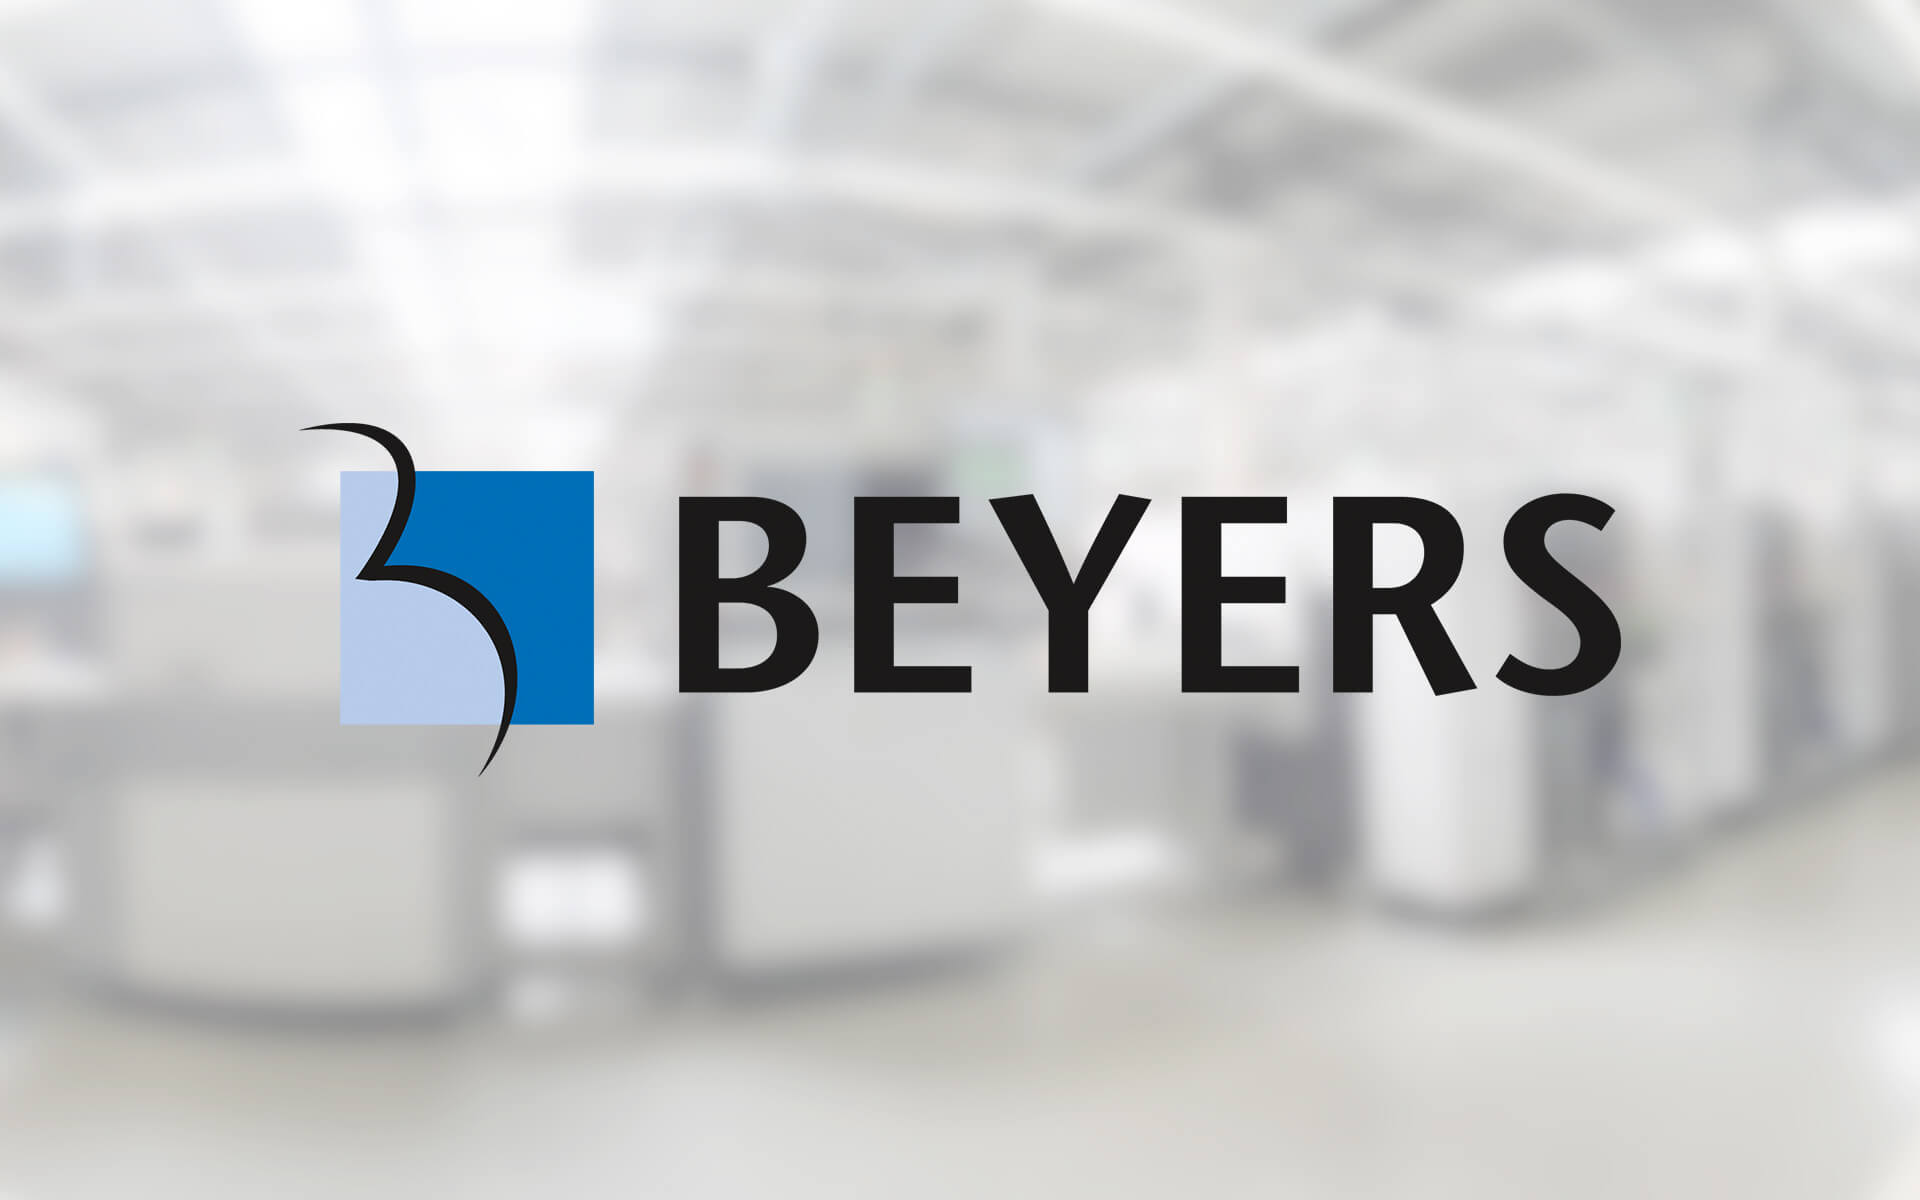 BEYERS Placeholder XXL